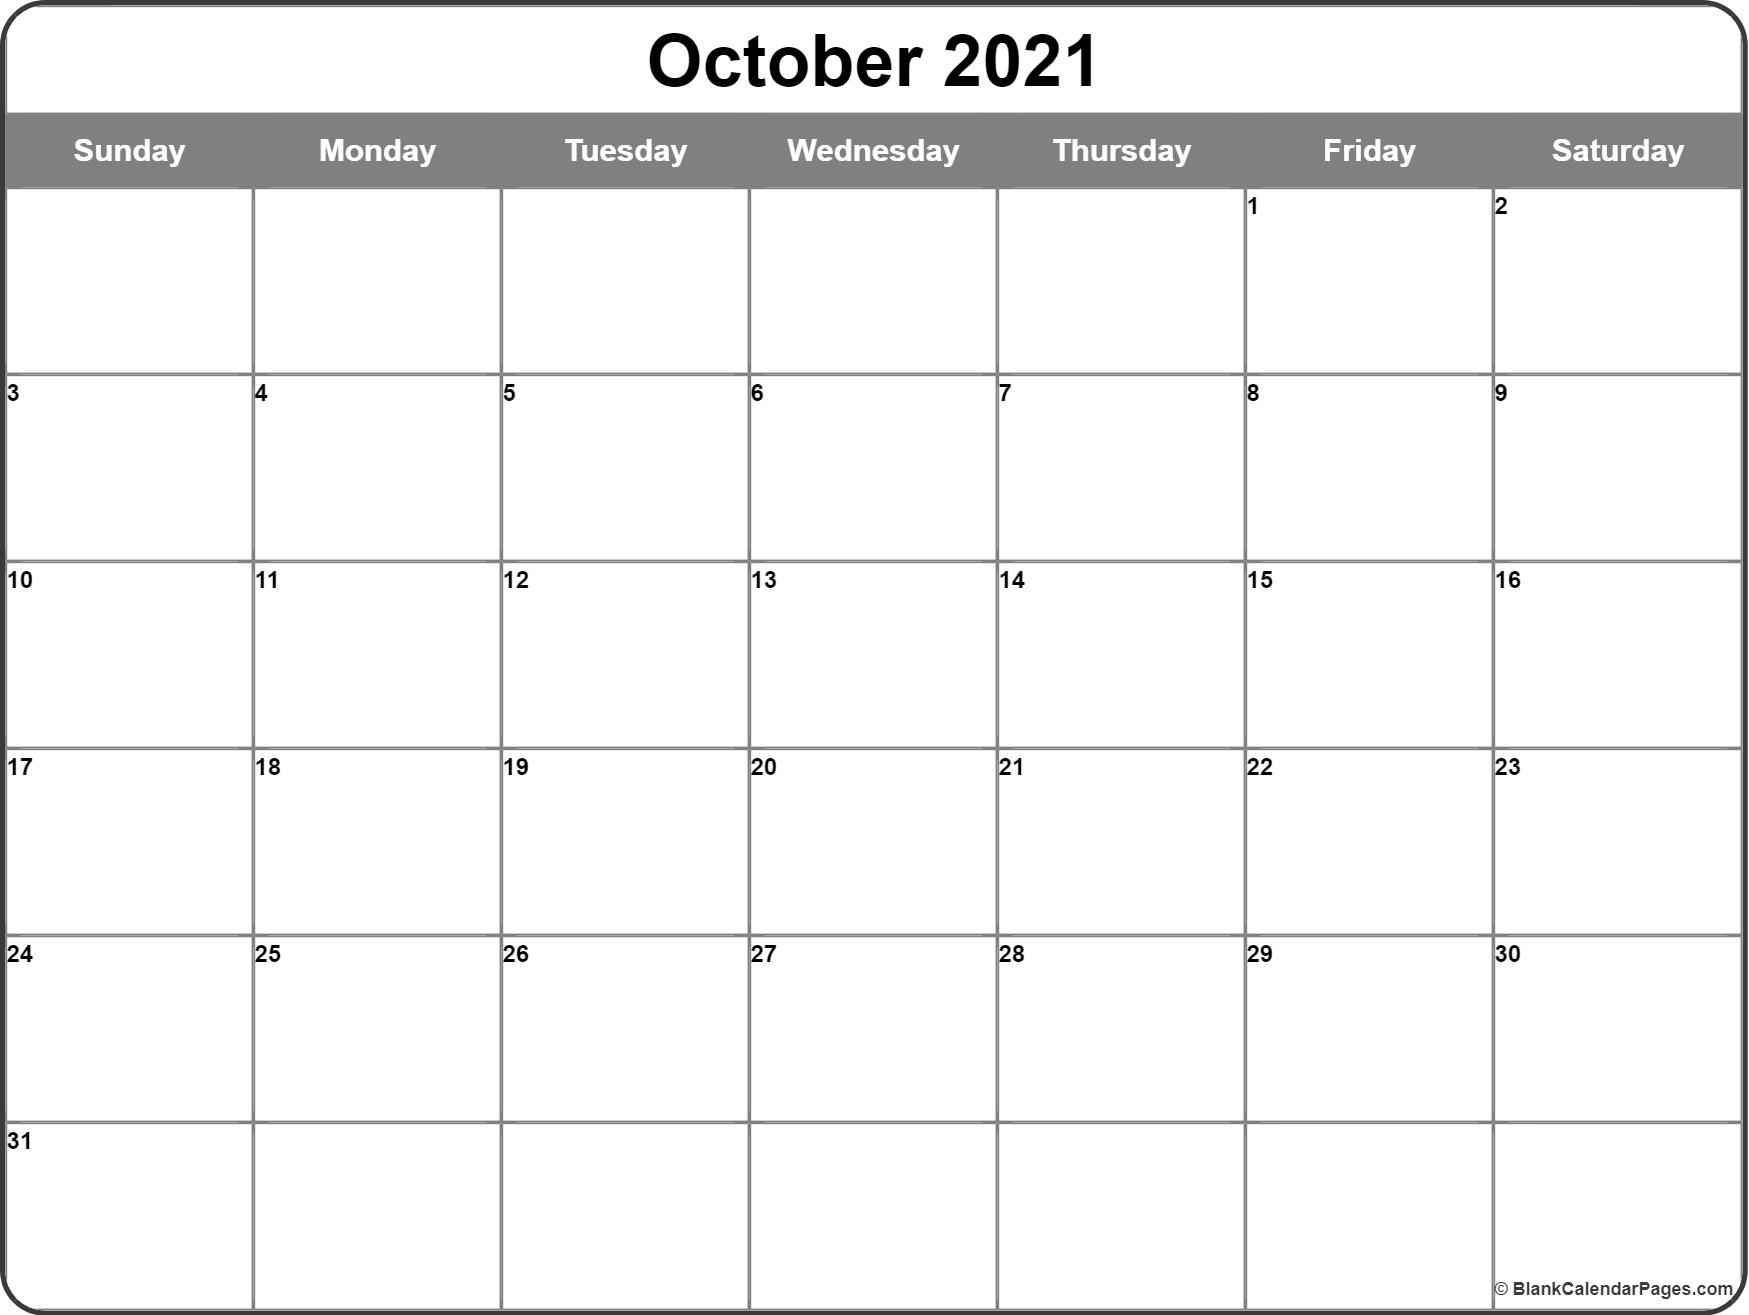 October 2021 template